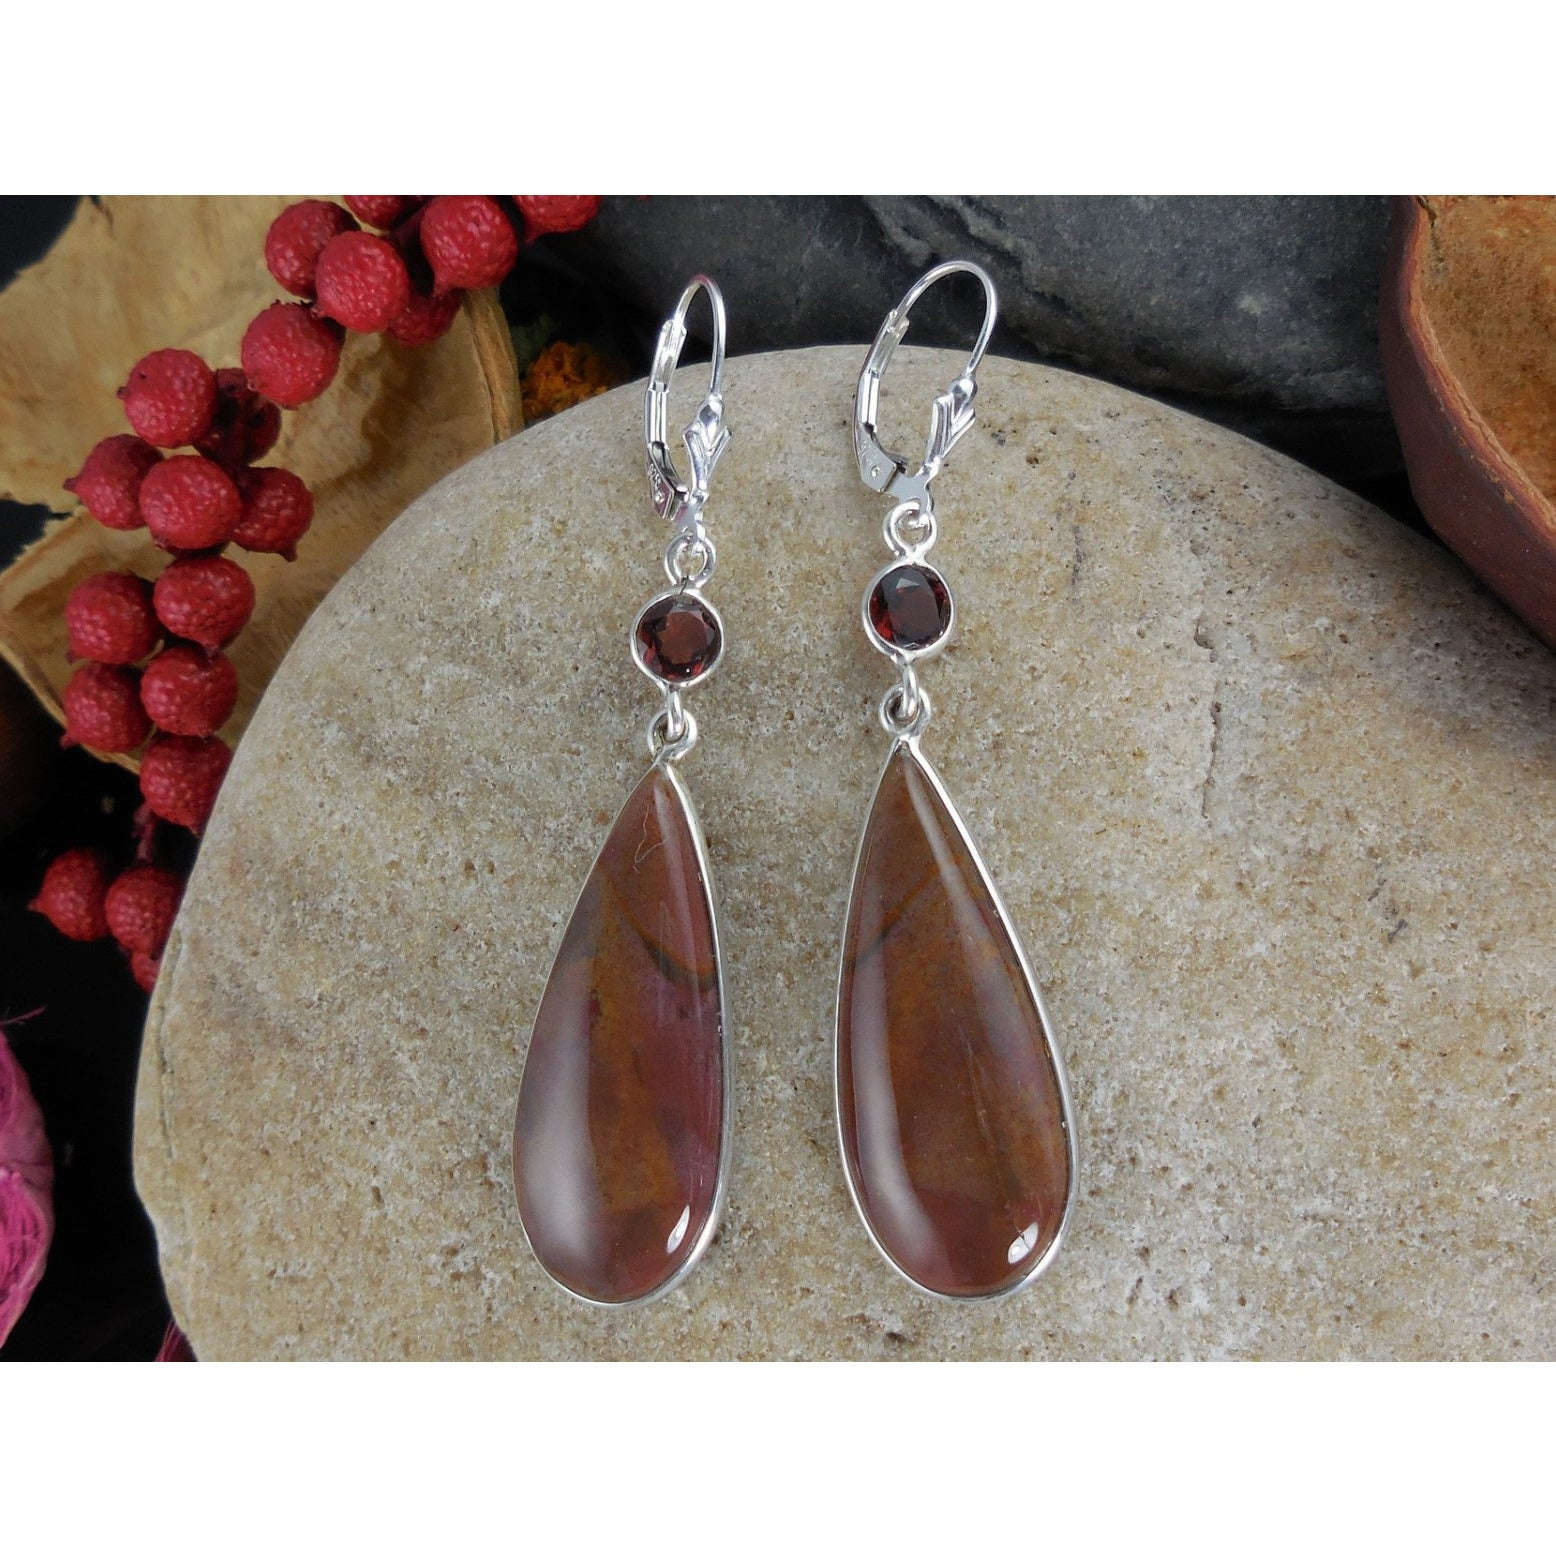 Bloodstone & Garnet Sterling Silver Earrings